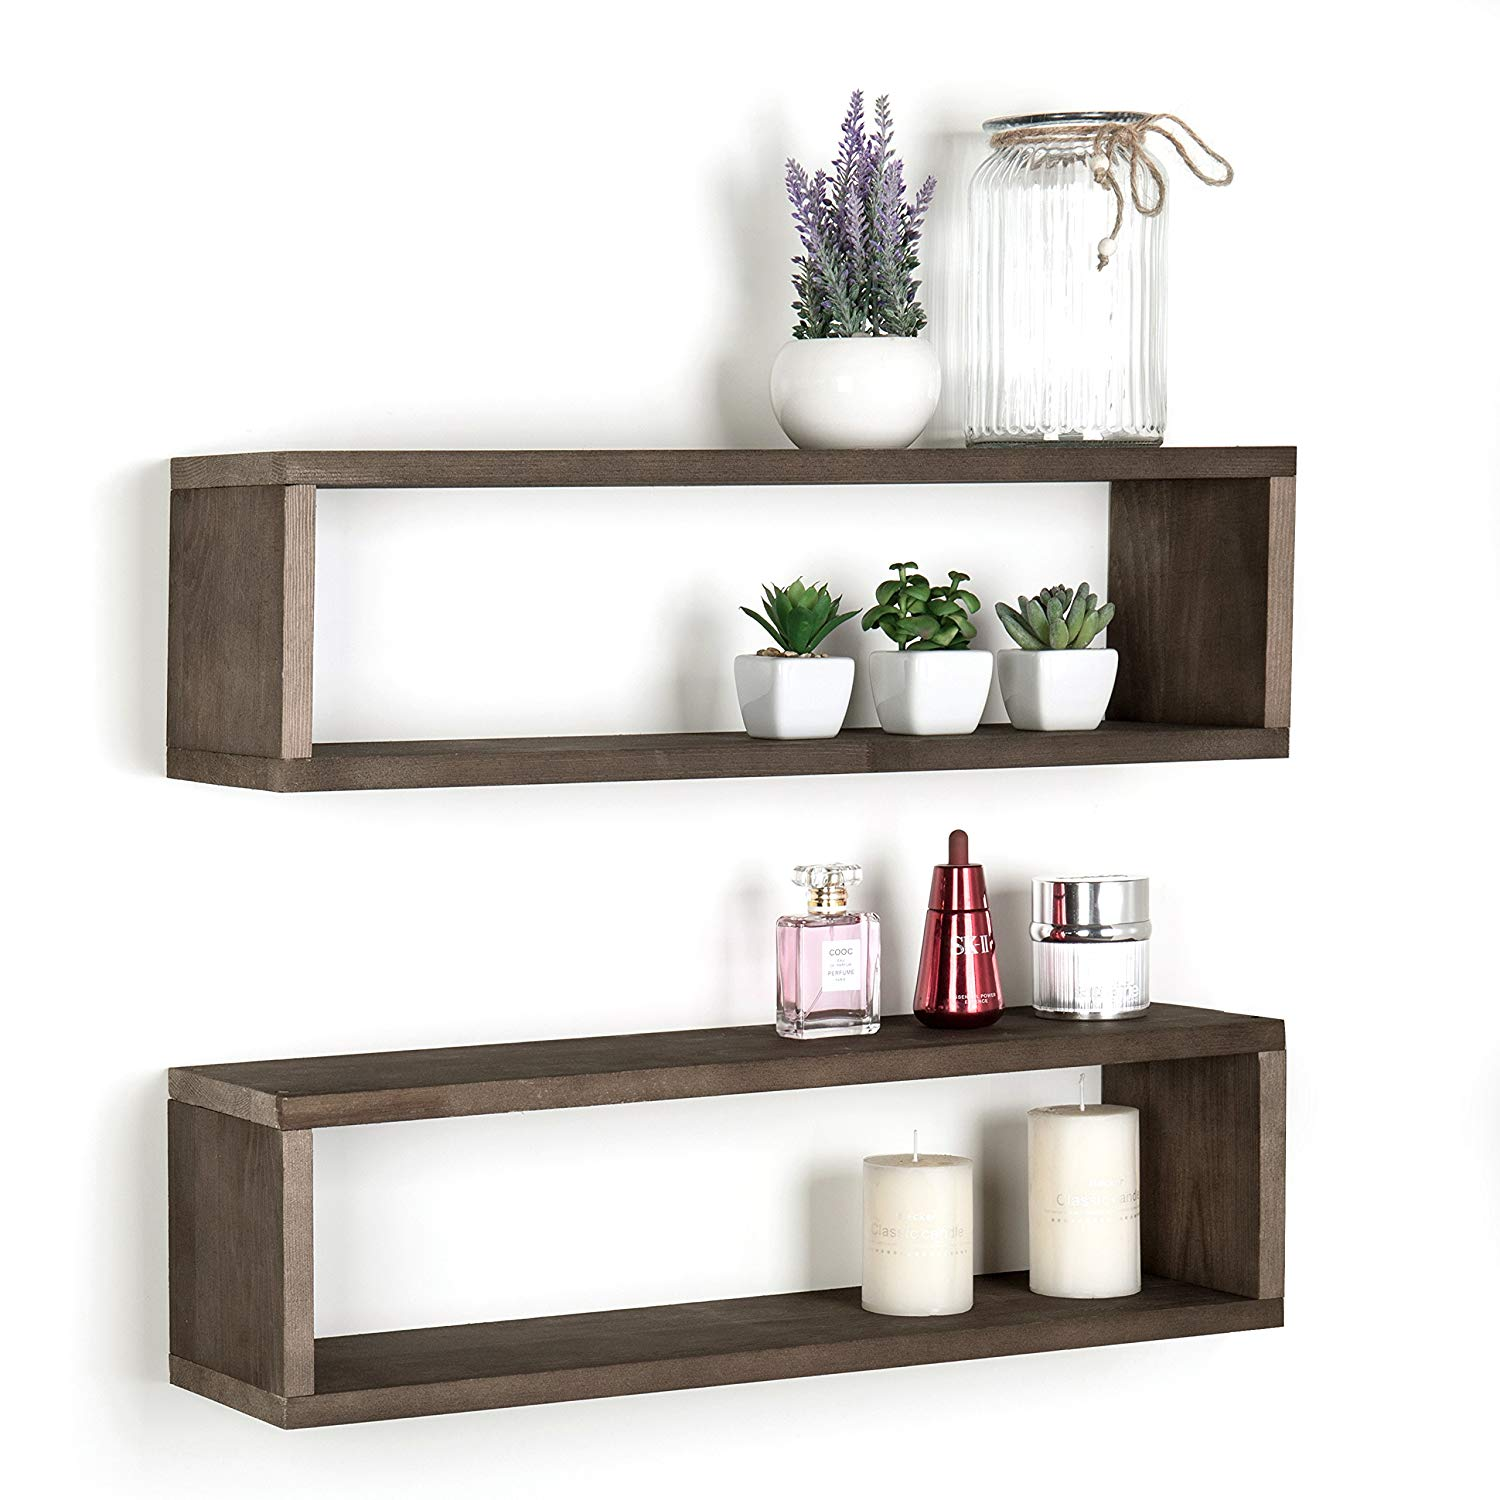 mygift dark brown wood finish wall mounted inch floating shelves shelf rectangular display shadow boxes set home kitchen plastic storage pine shelving unit vinyl tile flooring